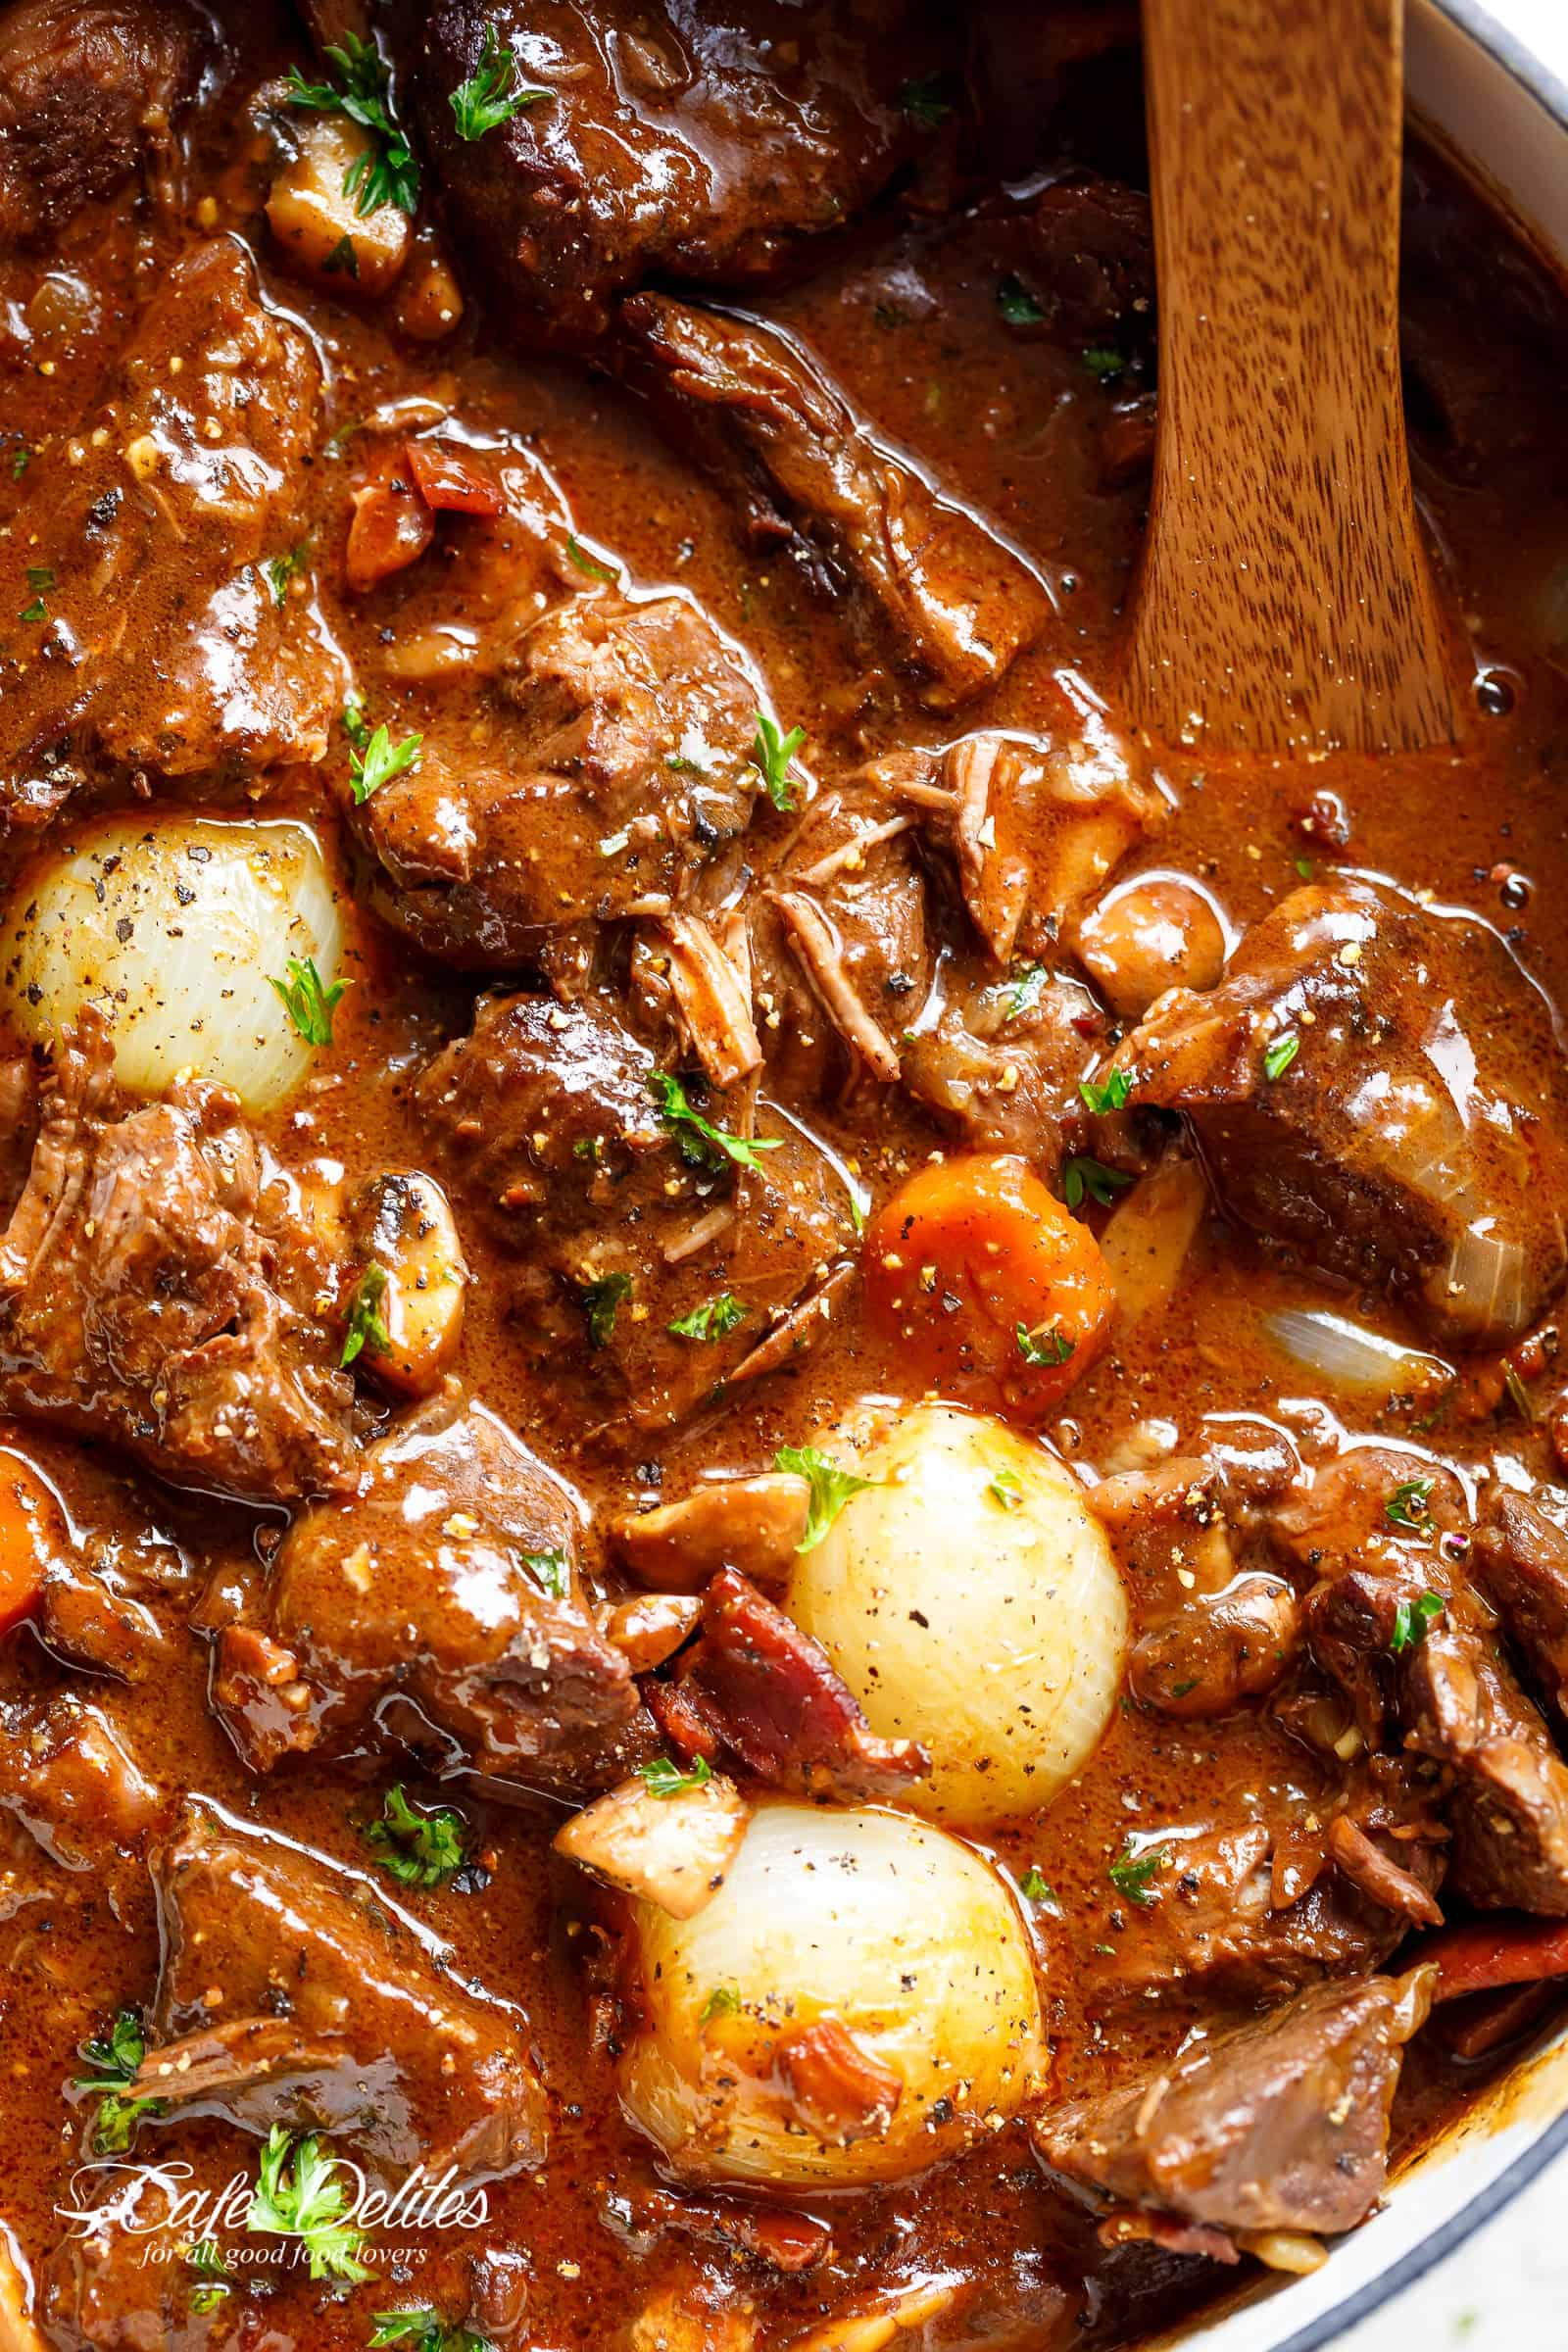 Beef Bourguignon recipe with Slow Cooker, Instant Pot/Pressure Cooker, Stove Top and the traditional Oven method included! | cafedelites.com